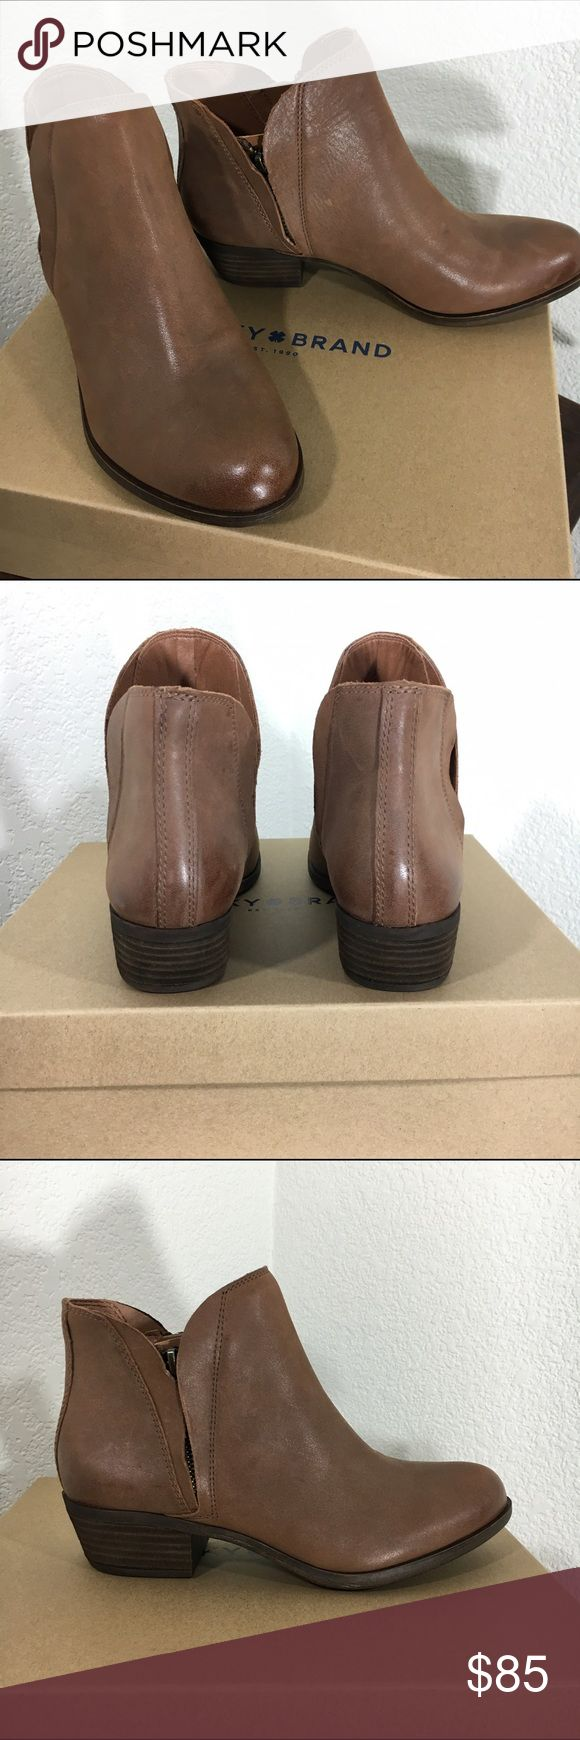 """Lucky leather booties Lucky boots. Great way to get ready for the fall. Upper leather. Side zip on inside and outside. 1.5"""" heel. Brown/tan color. Lucky Brand Shoes Ankle Boots & Booties"""